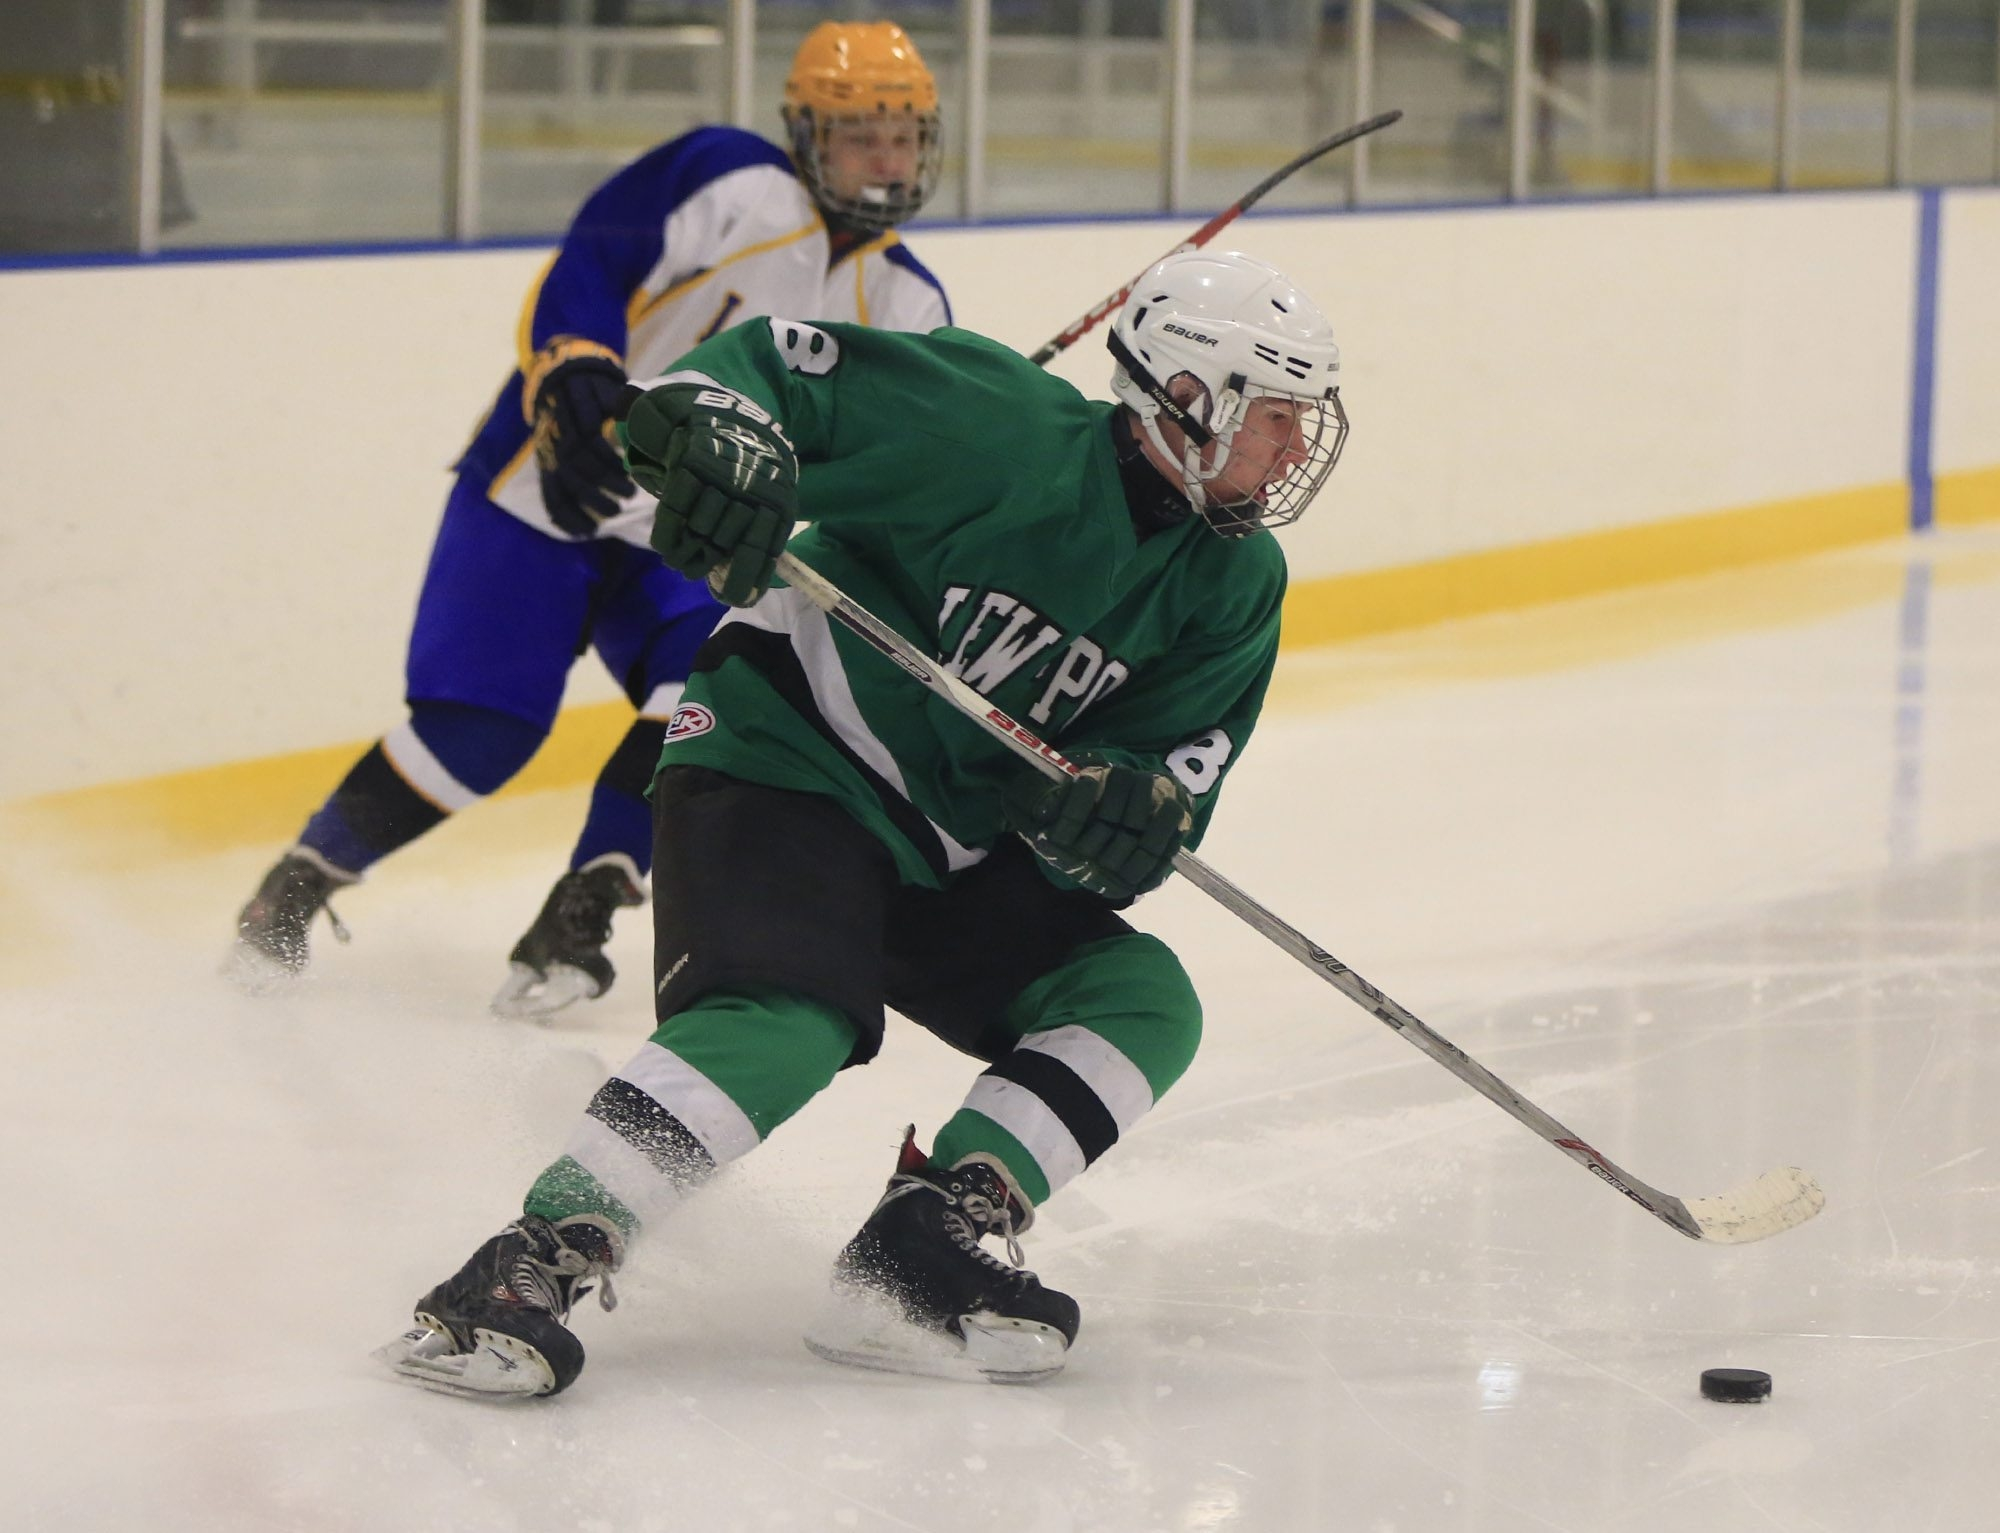 Braden Regis moves the puck on offense against Lockport during Thursday's game at Hyde Park. He finished with three goals to lead Lewiston-Porter to victory.